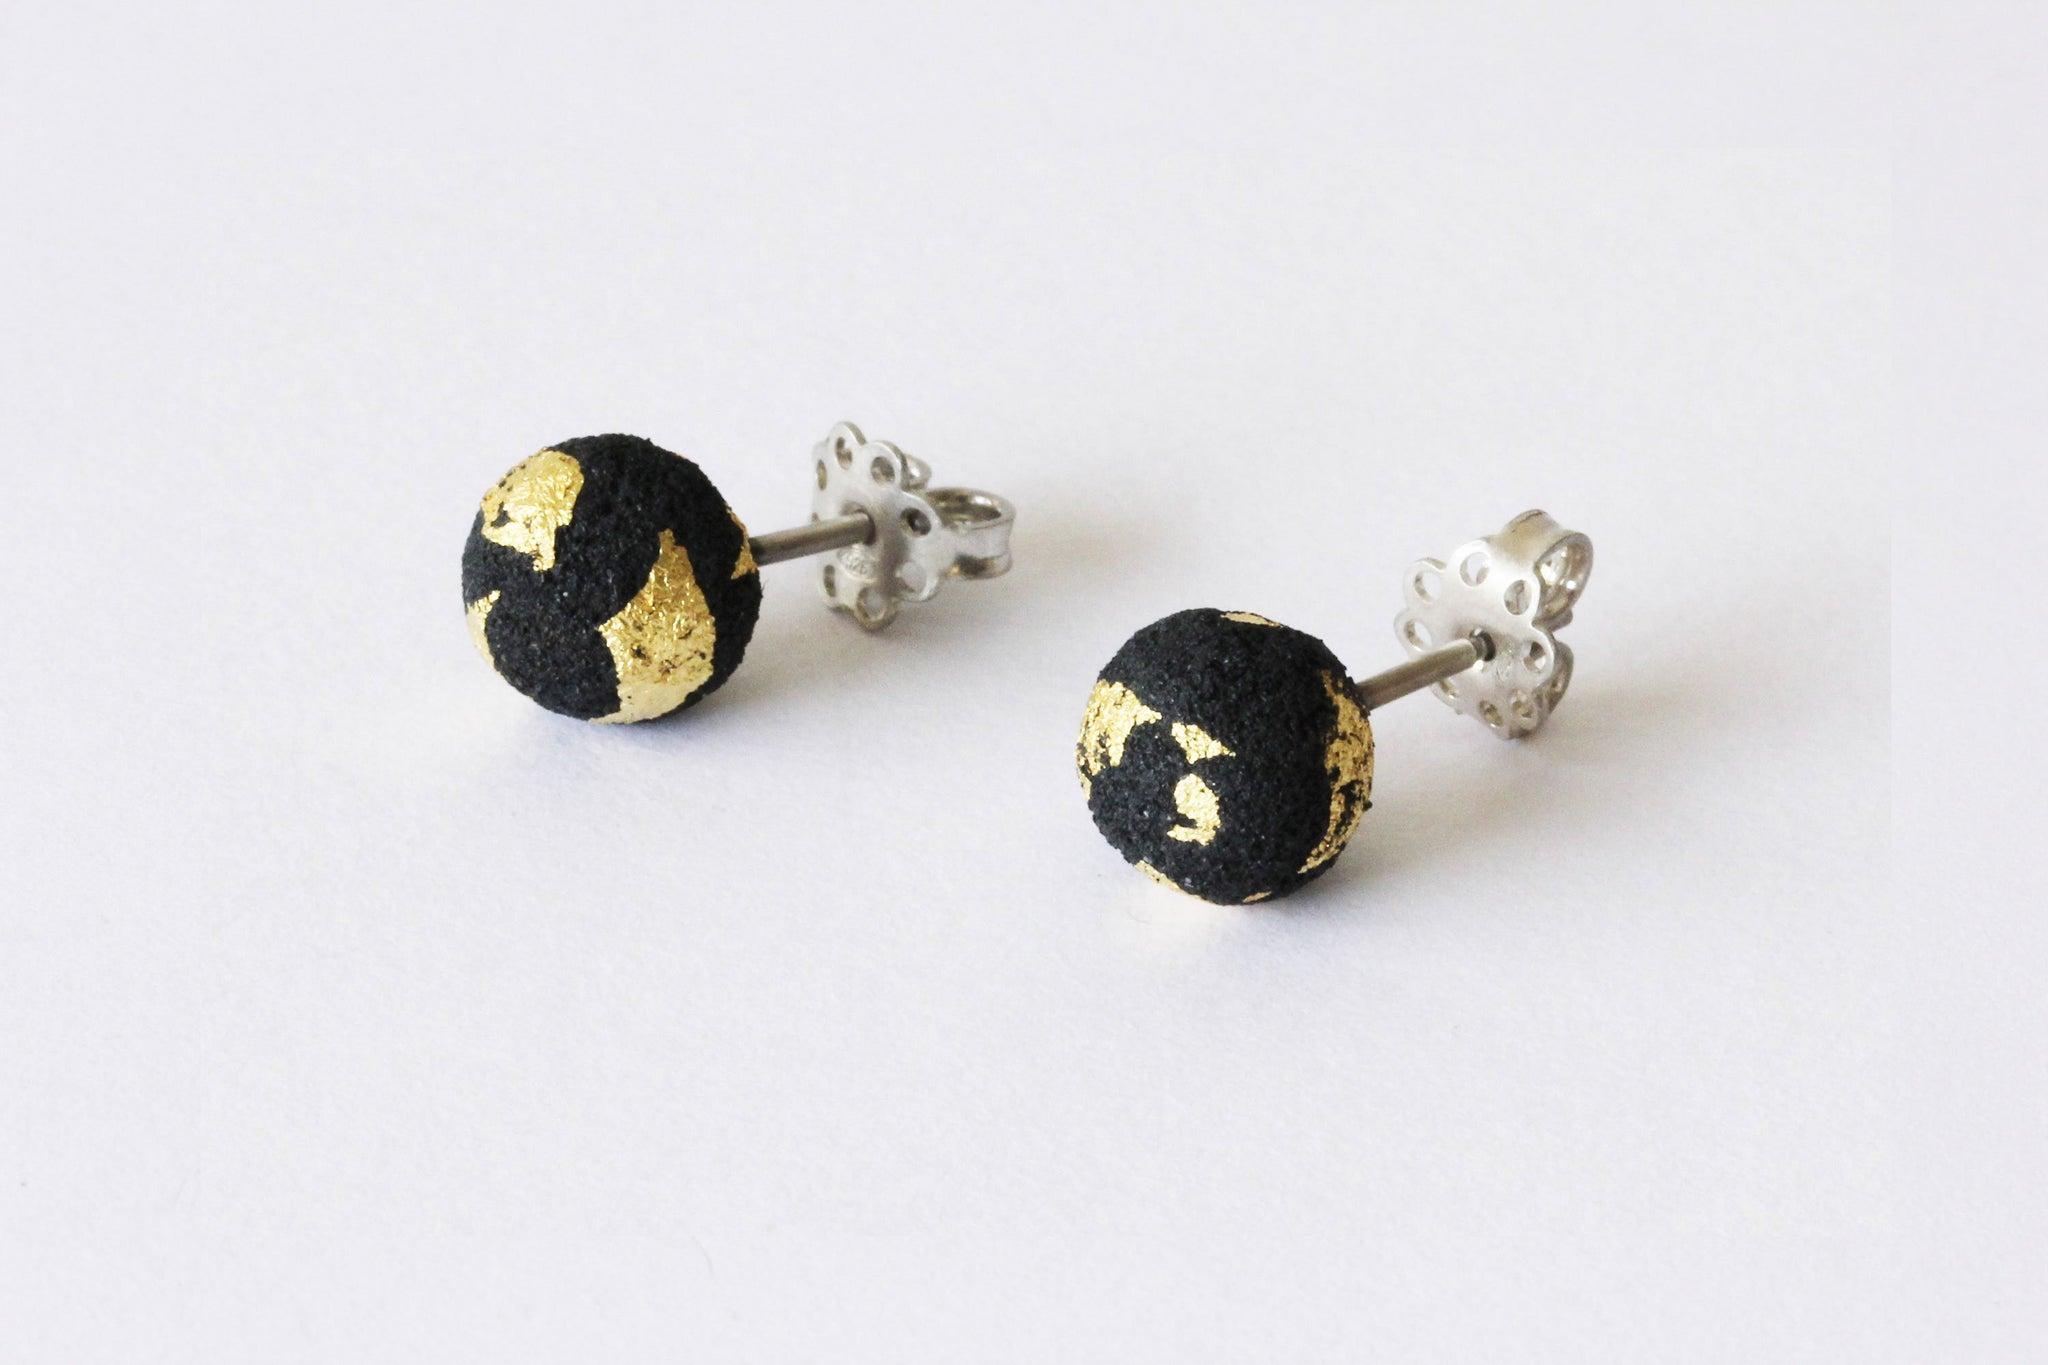 Oxidized Silver and Gold Foil Studs